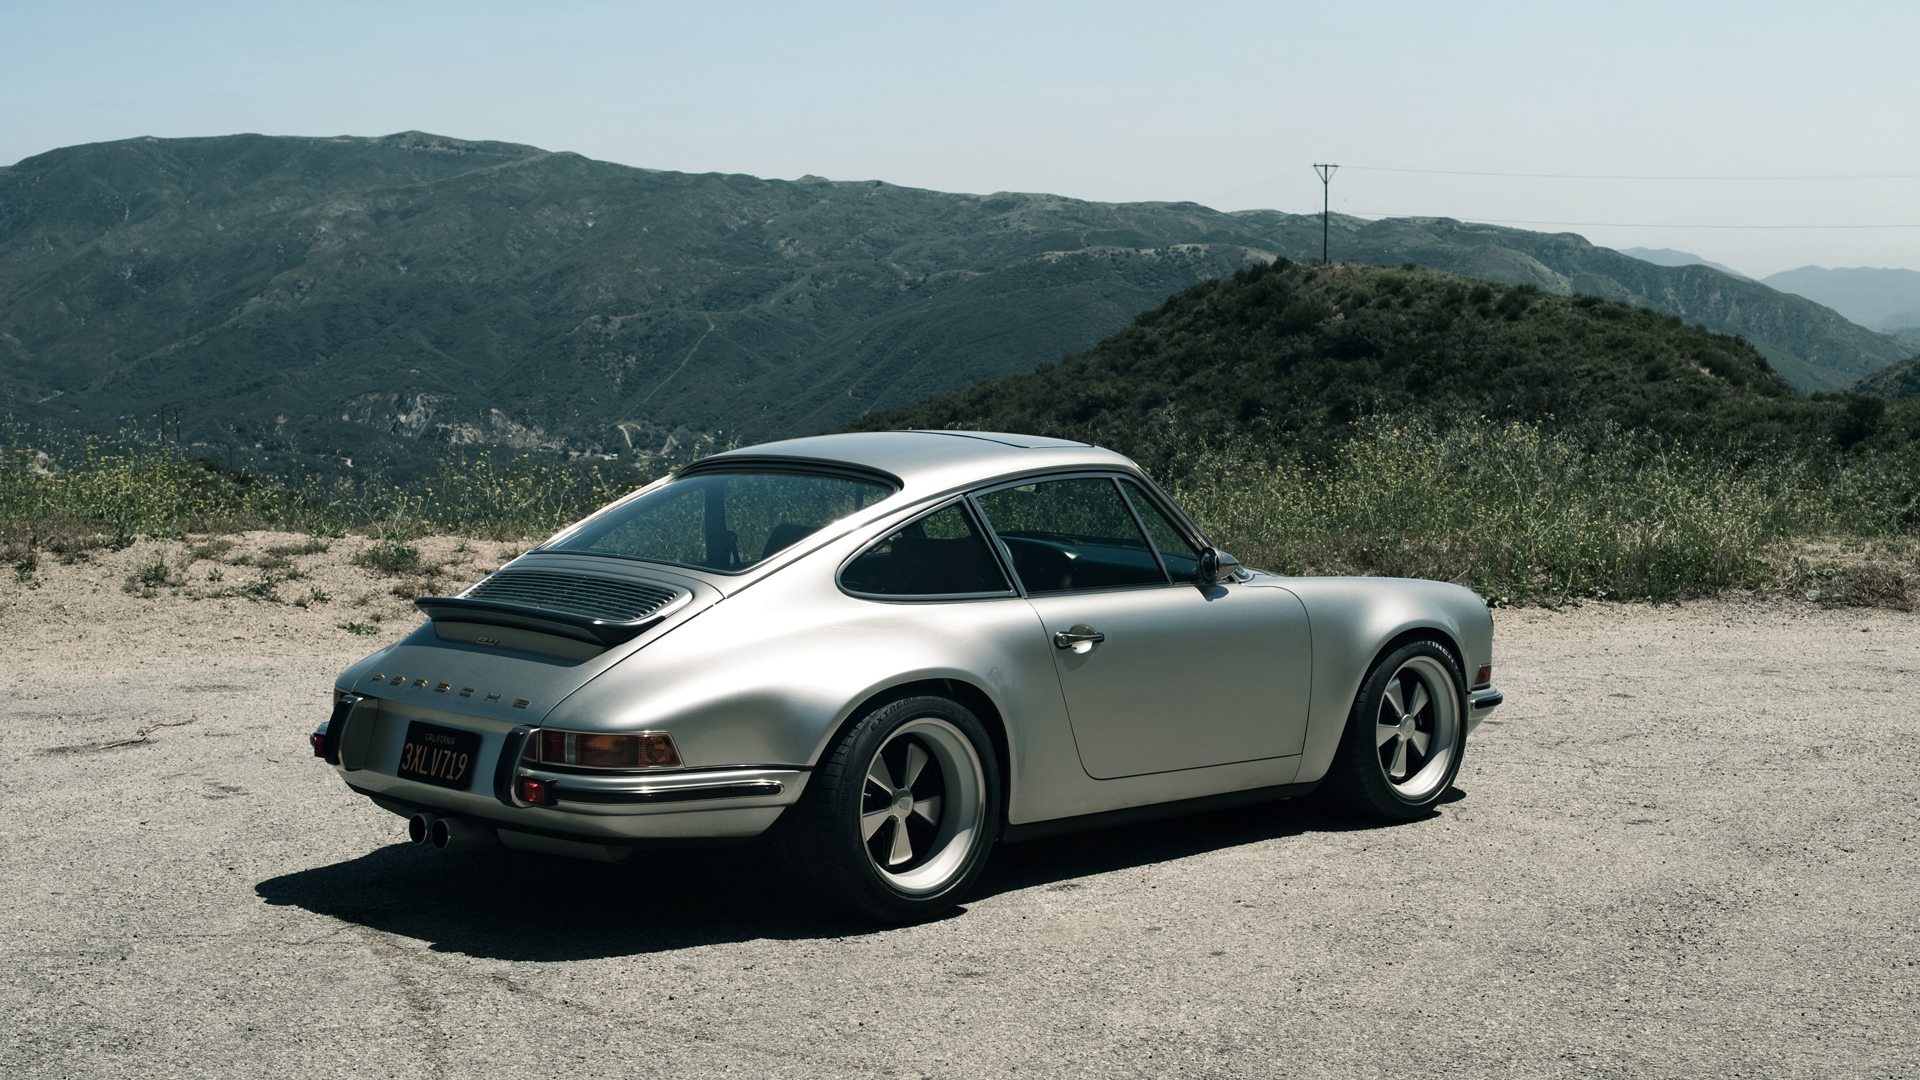 Vintage Porsche 911 Wallpaper Widescreen 1920x1080